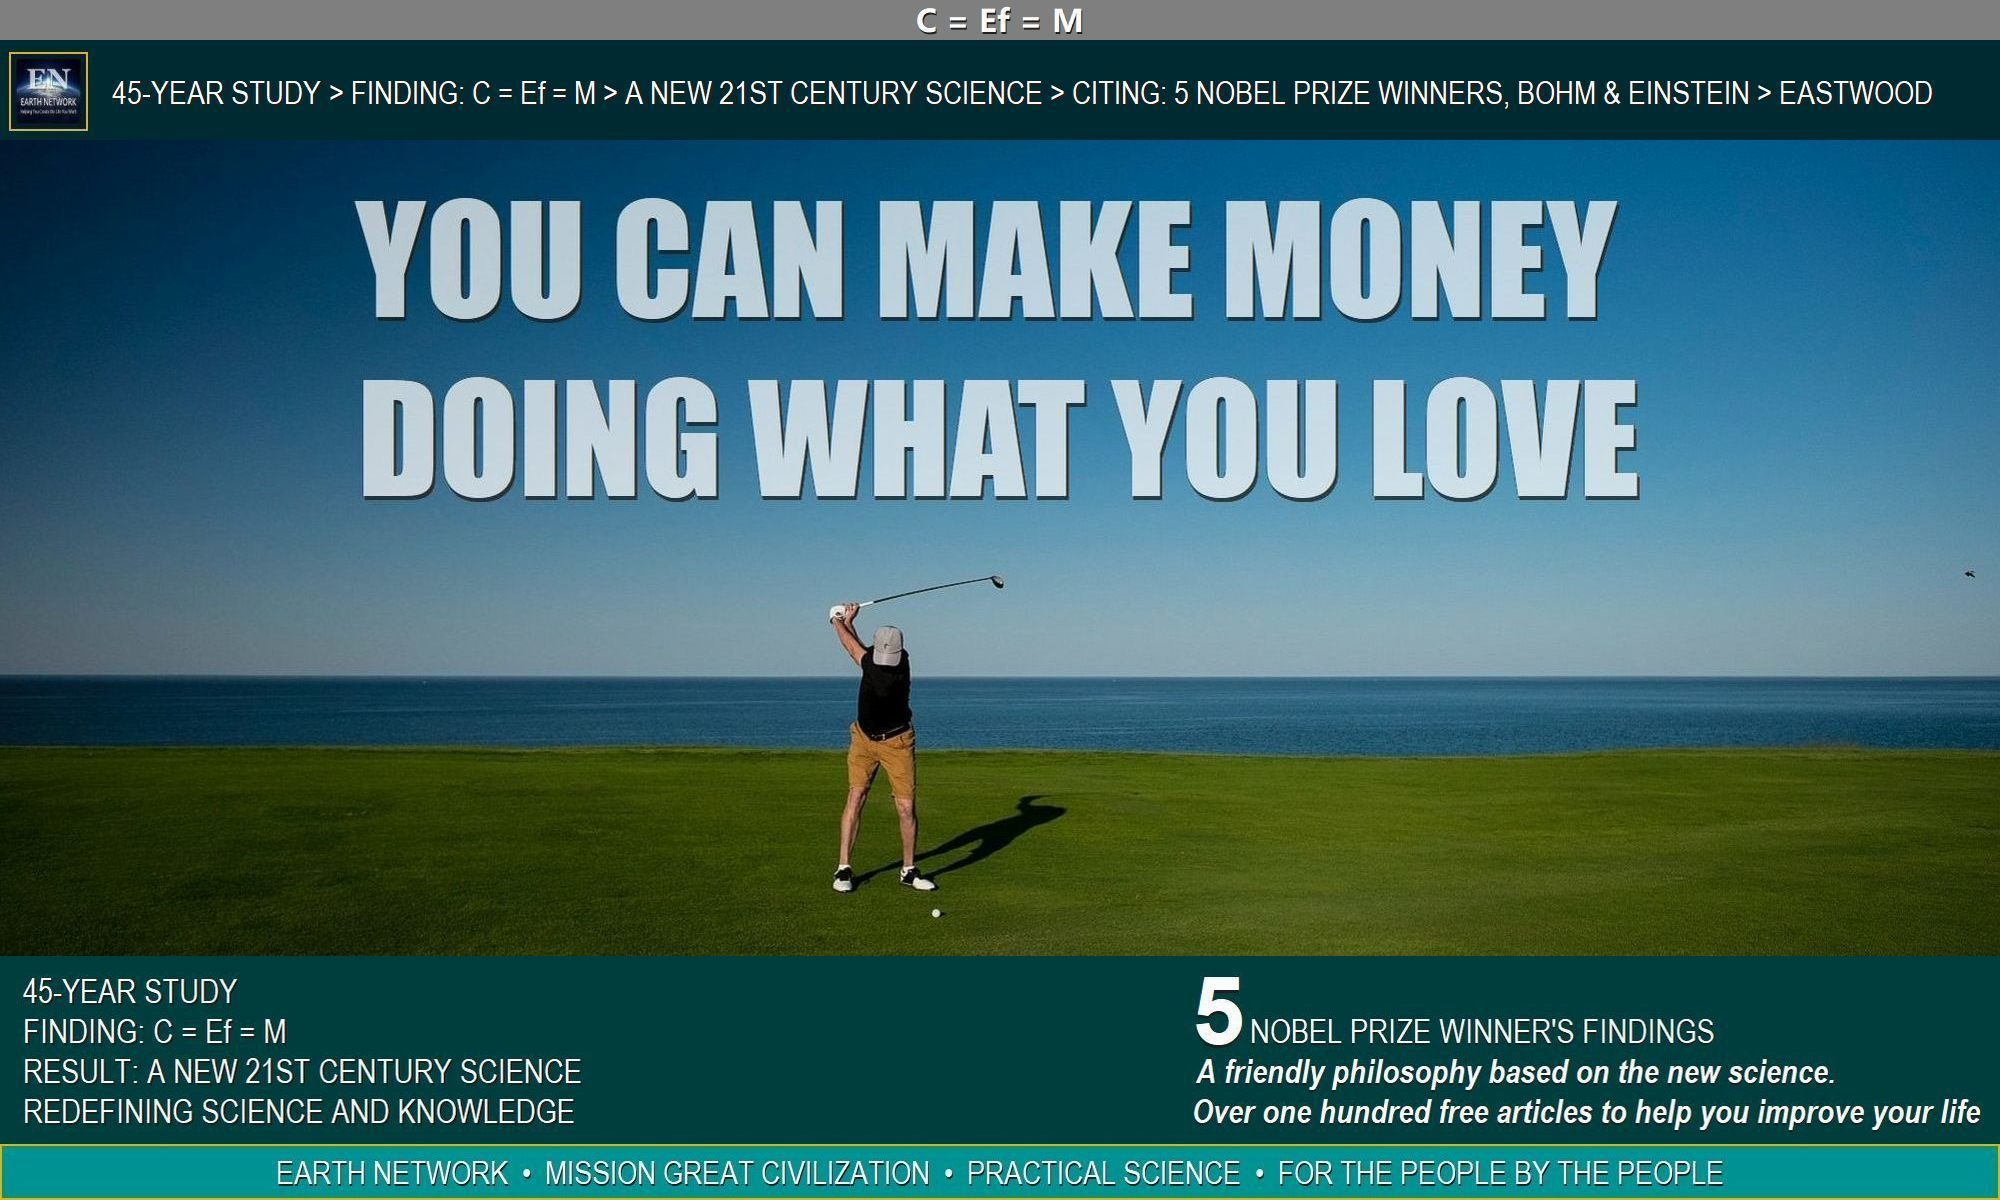 Golfer knows how to make money doing what he loves as his profession.